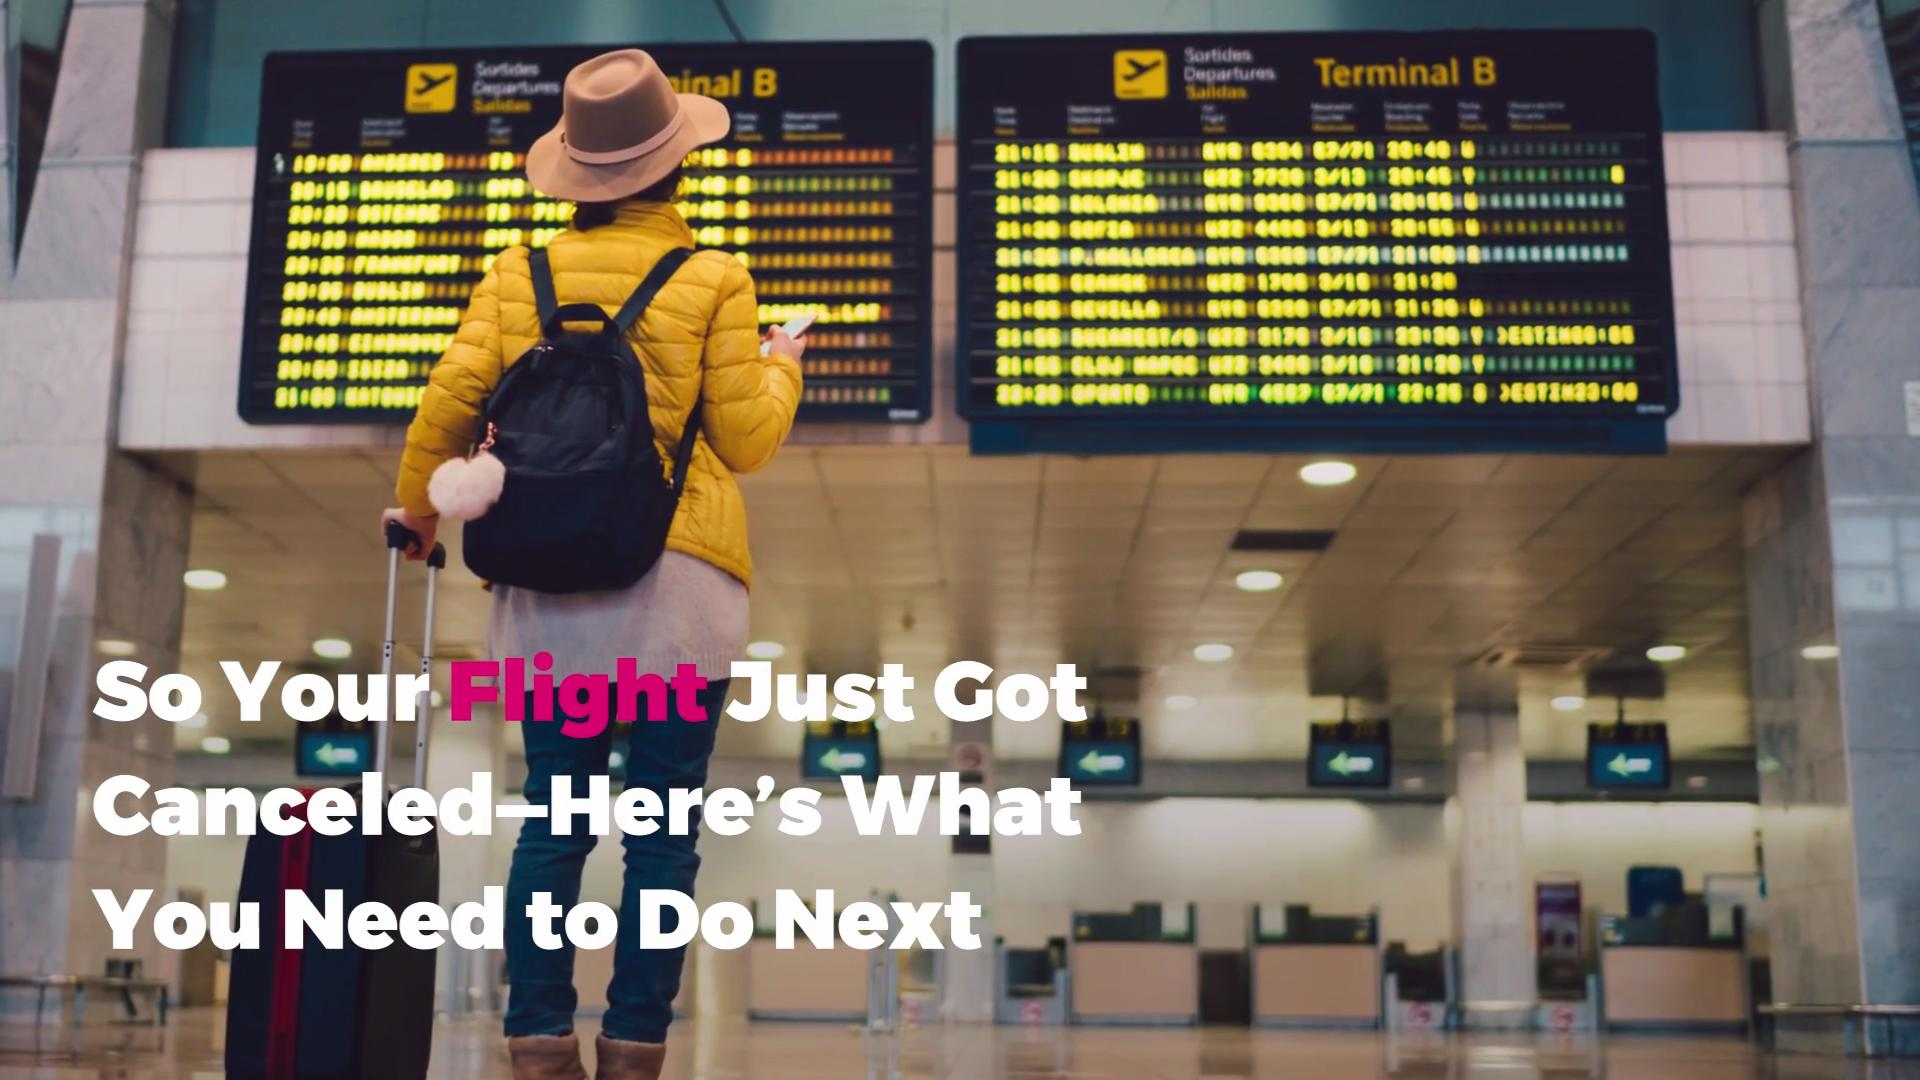 So Your Flight Just Got Canceled—Here's What You Need to Do Next